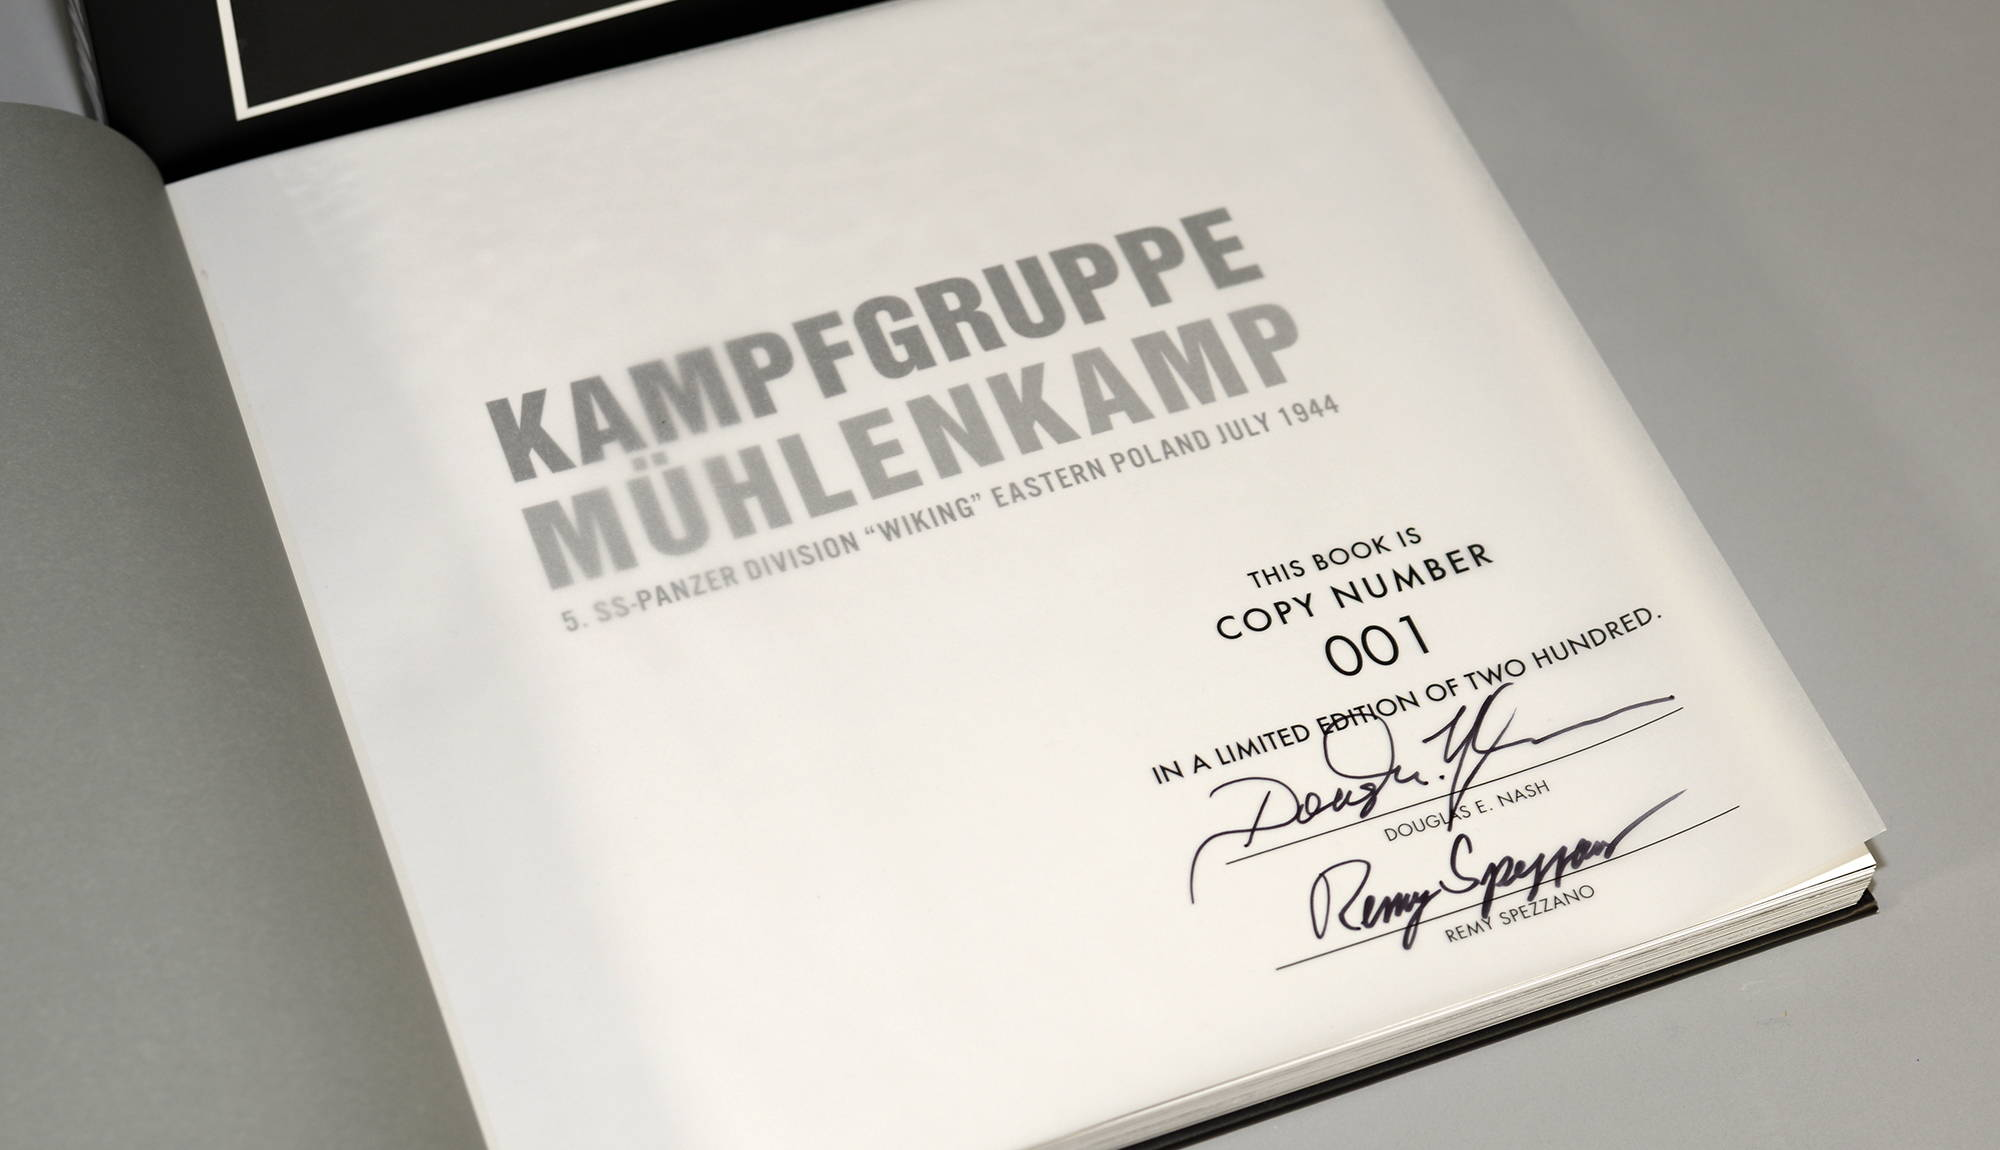 """Signature page in """"KAMPFGRUPPE MÜHLENKAMP Signed and Numbered Edition with slipcase"""""""